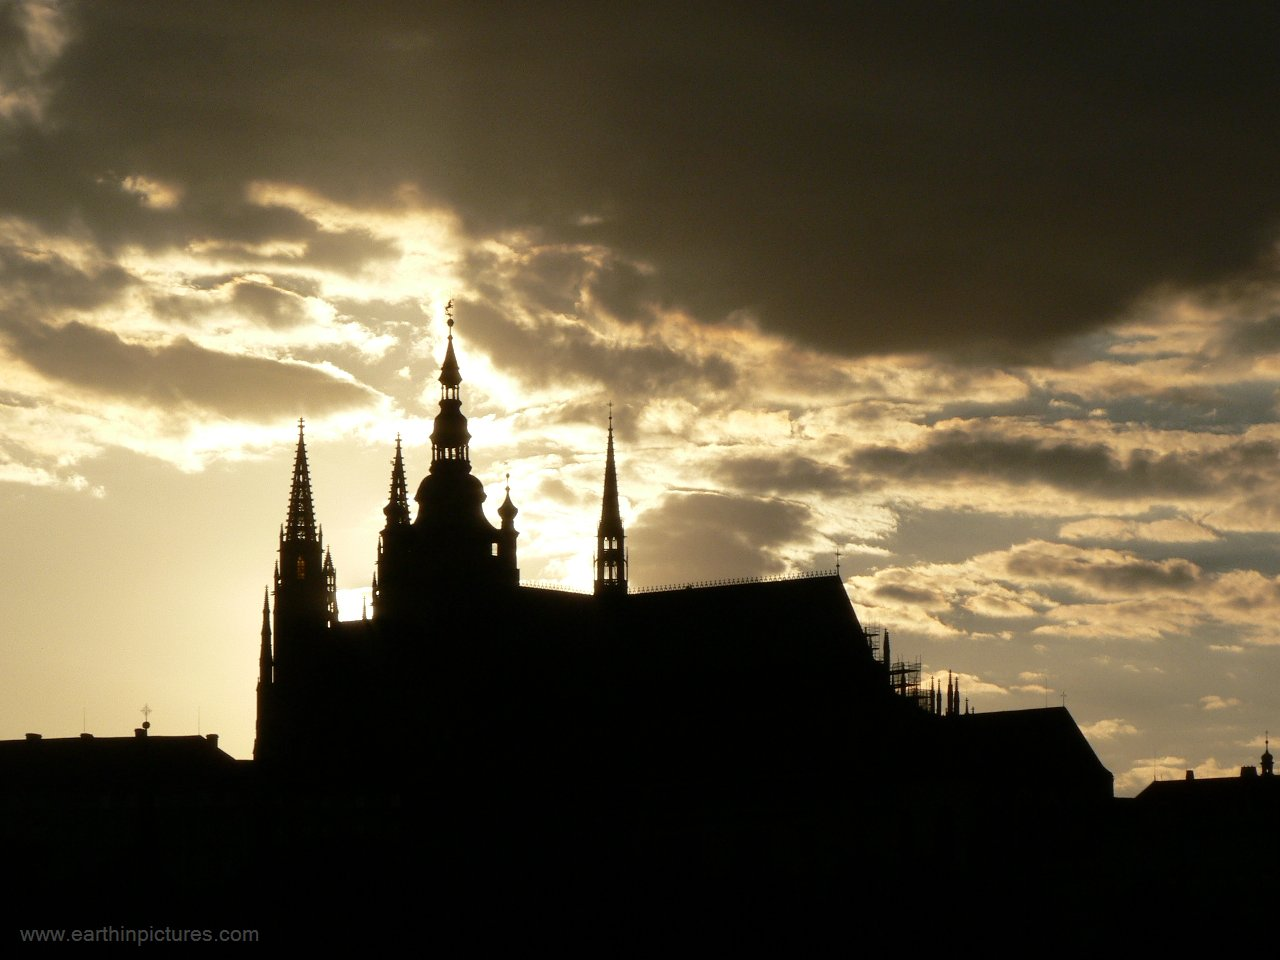 Prague Castle silhouette ( 1280x960 )